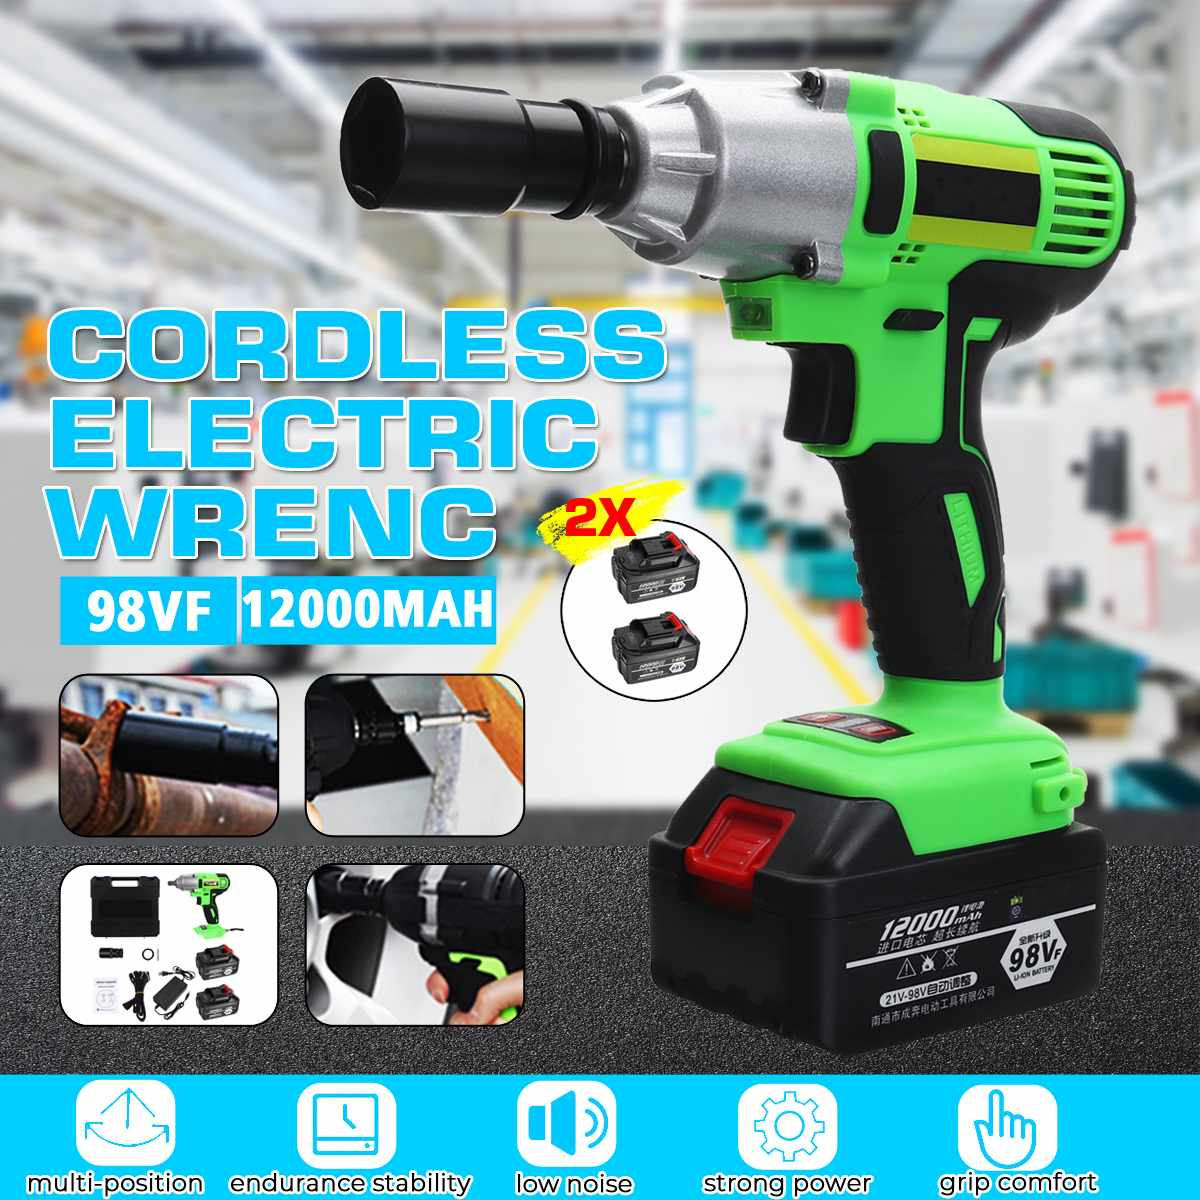 98VF Brushless Socket Wrench Electric Wrench Cordless Impact Wrench 12000mAh Rechargeable Li-ion 2 Battery Power Tools